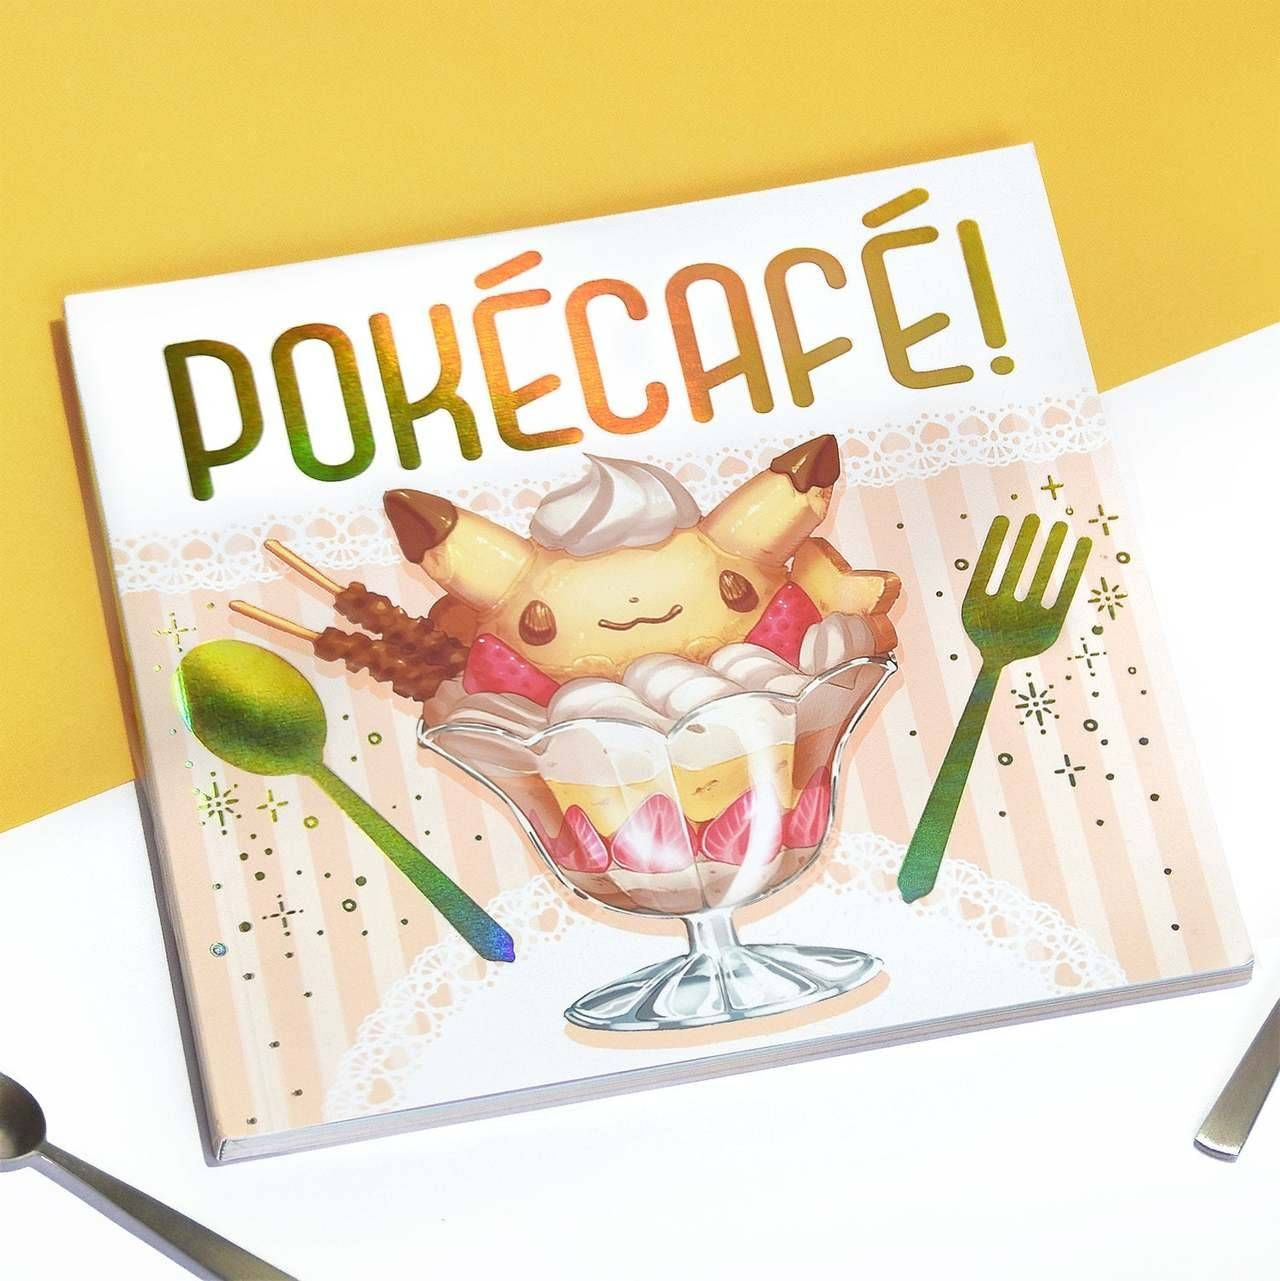 Artist Susan Lao just published an illustrated book of Pokemon-inspired desserts -